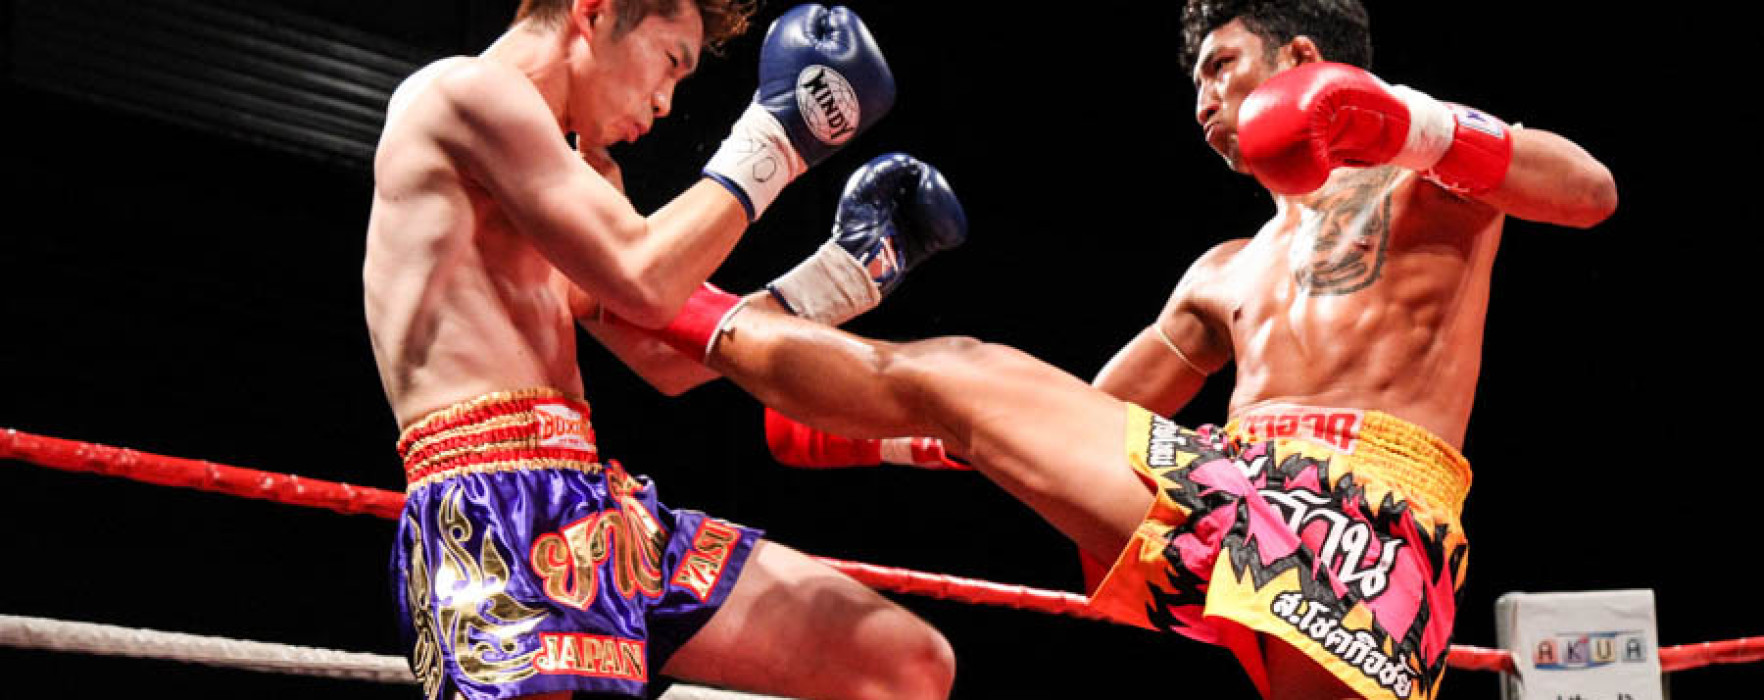 Video: Pakorn PK SaenchaiMuayThai vs Yasuyuki – Rebels – Japan – 26 Ottobre 2014